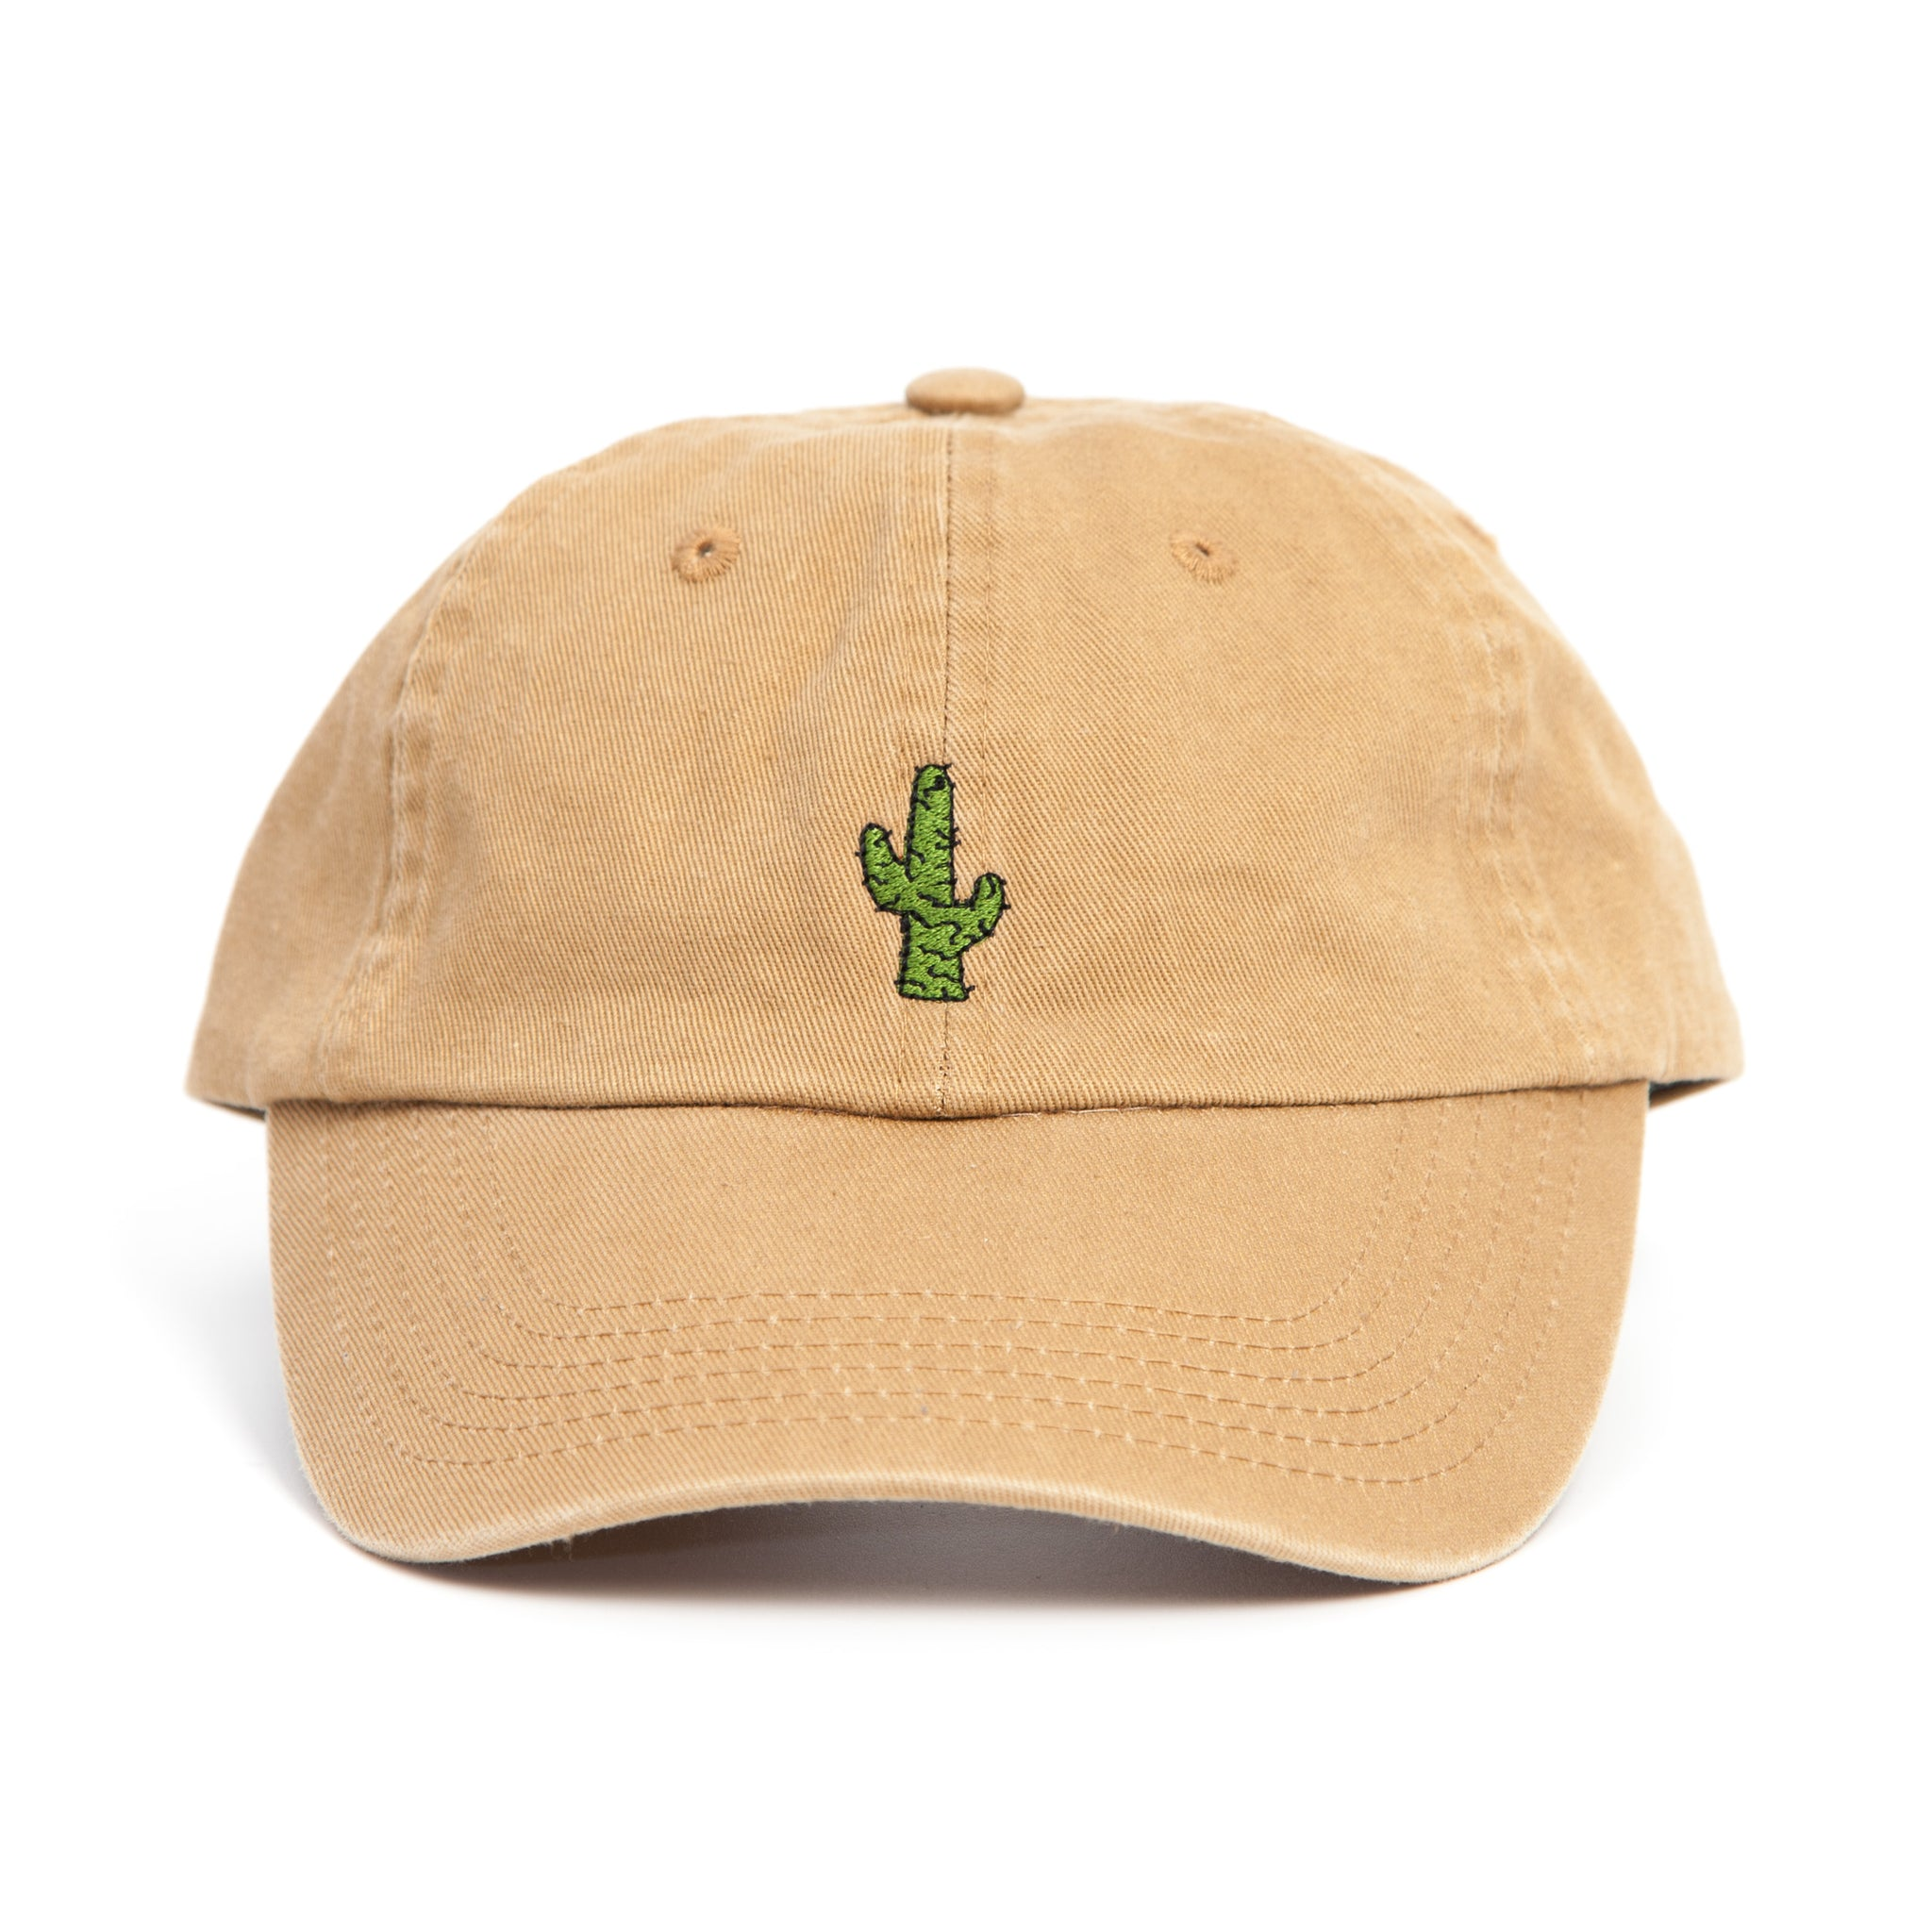 Tan Dad Cap // Stay Thirsty